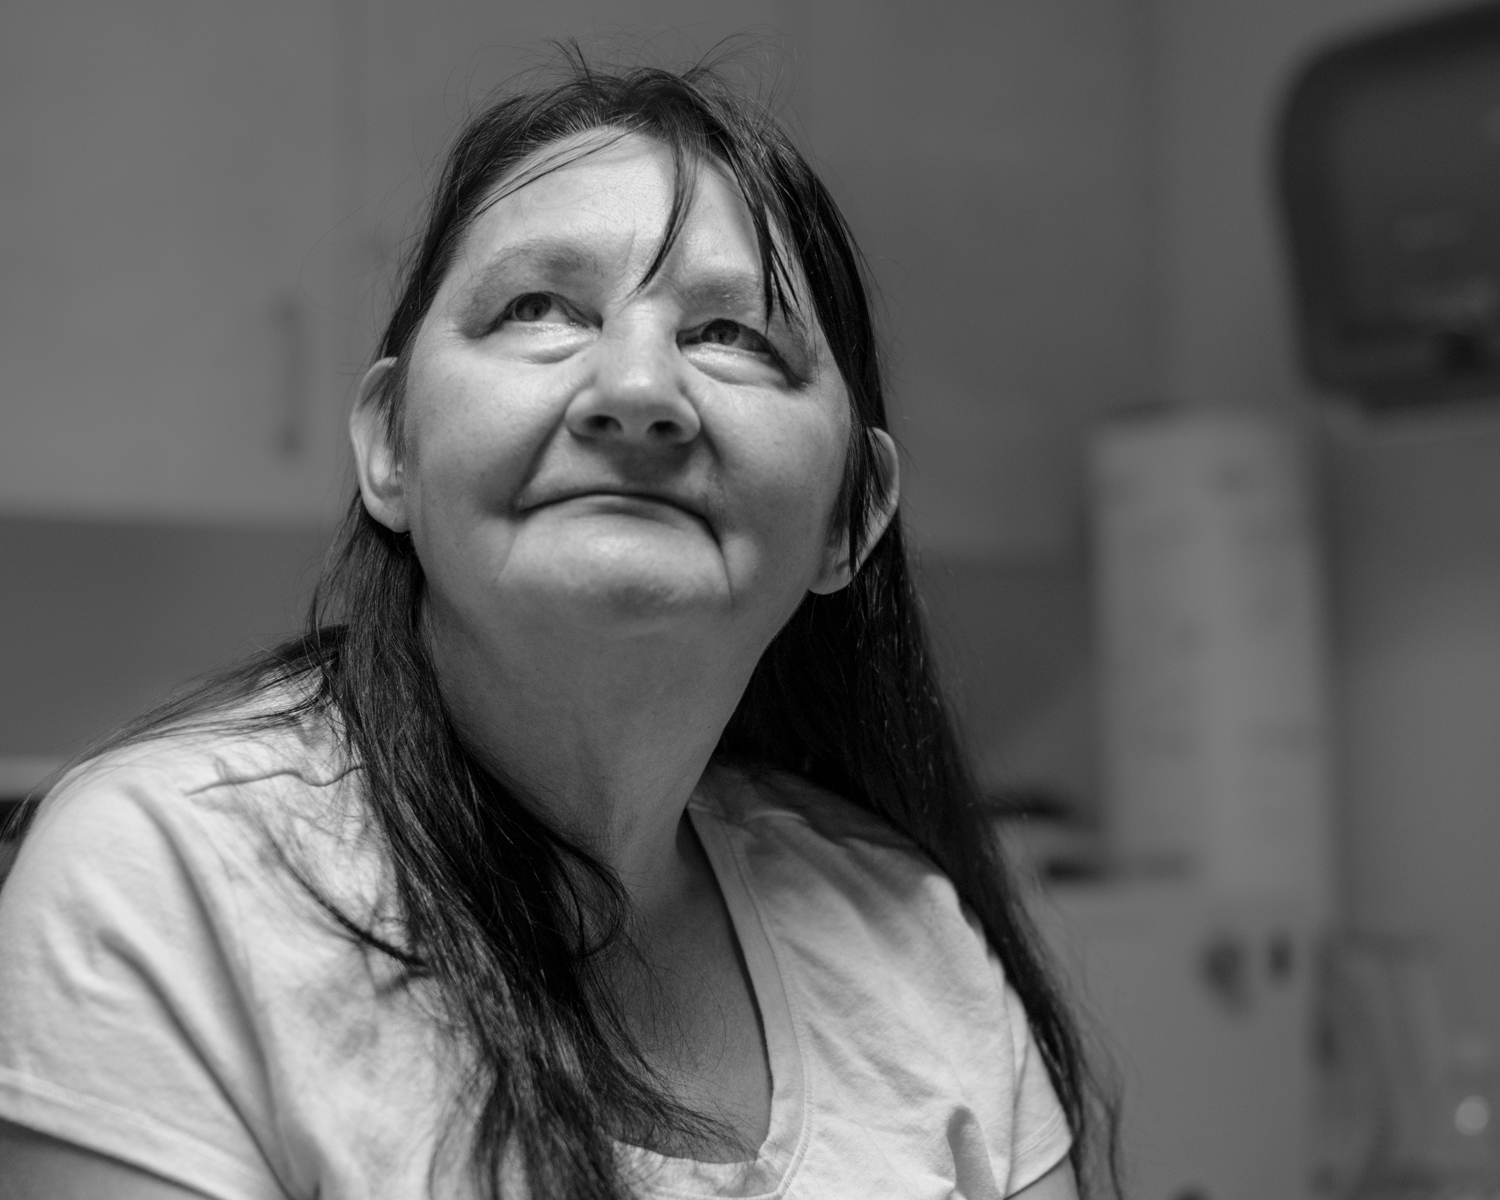 Lois Smith of Whitesburg, Ky., has health insurance for the first time in her life due to the Medicaid expansion. She undergoes treatments at Whitesburg Hospital for complications related to her diabetes, and said she fears that she will lose access to health care in the current political climate. (Photo by Ben Brody)